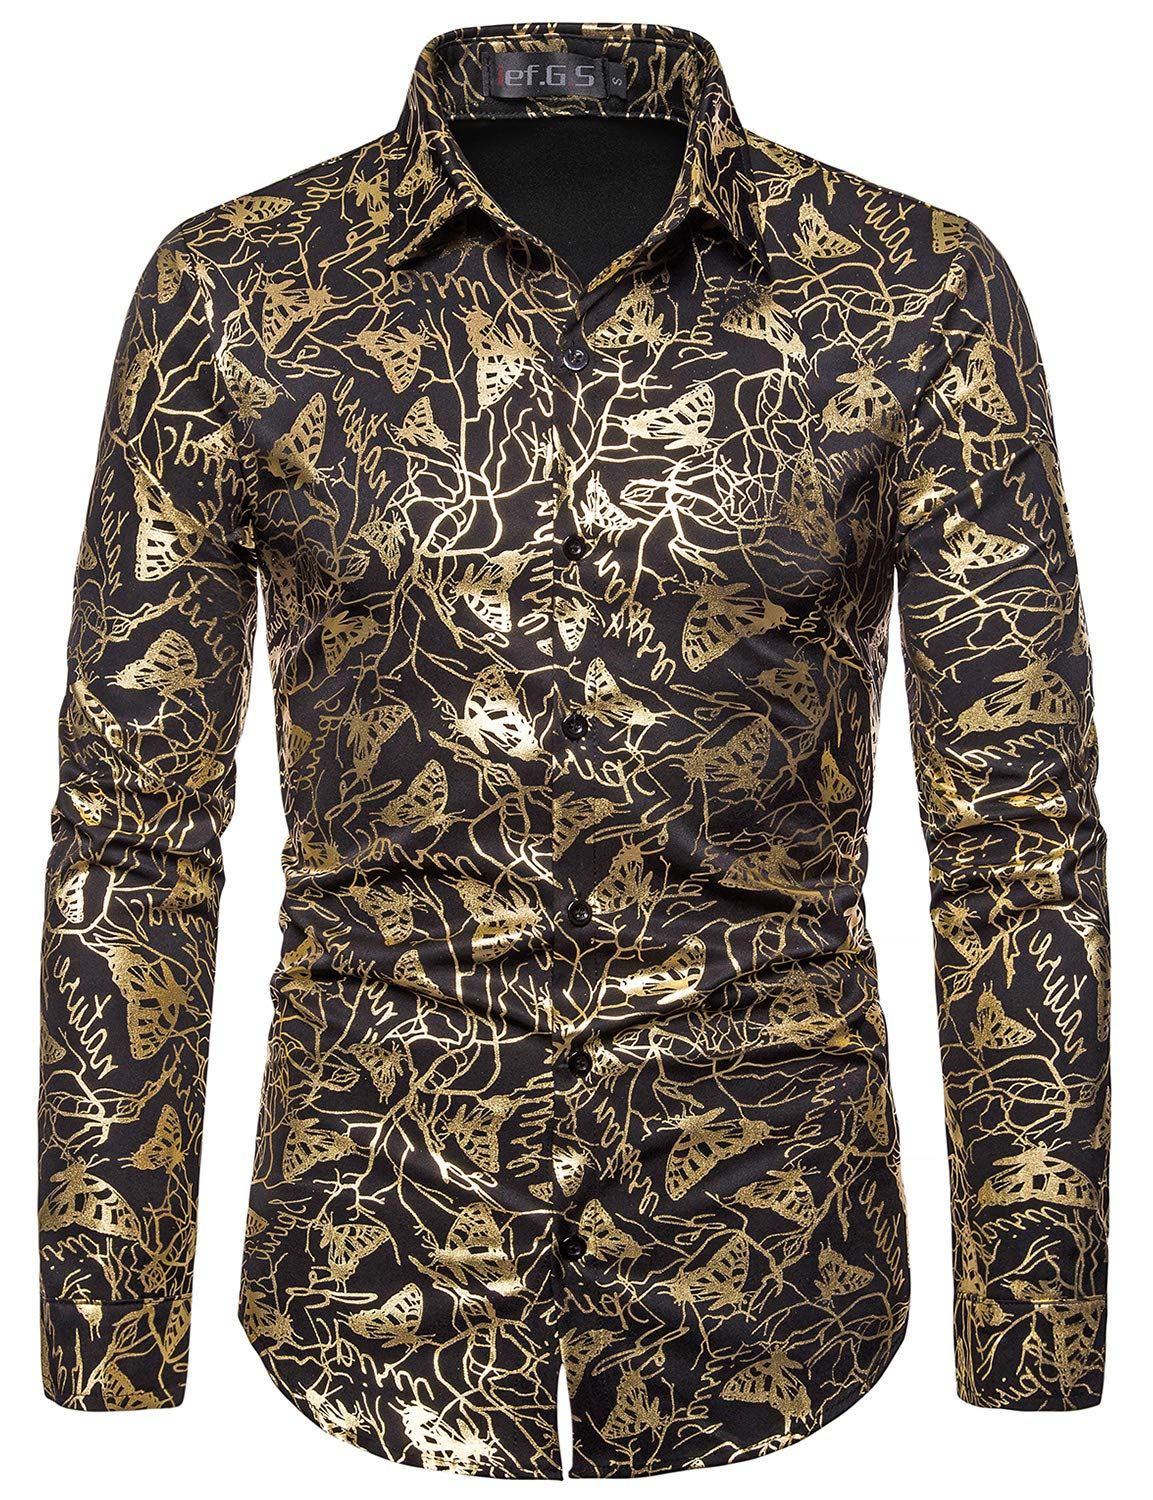 ief.G.S Men's Party Dress Shirts Gold Paisley Printed Luxury Design Long Sleeve Shiny for Disco